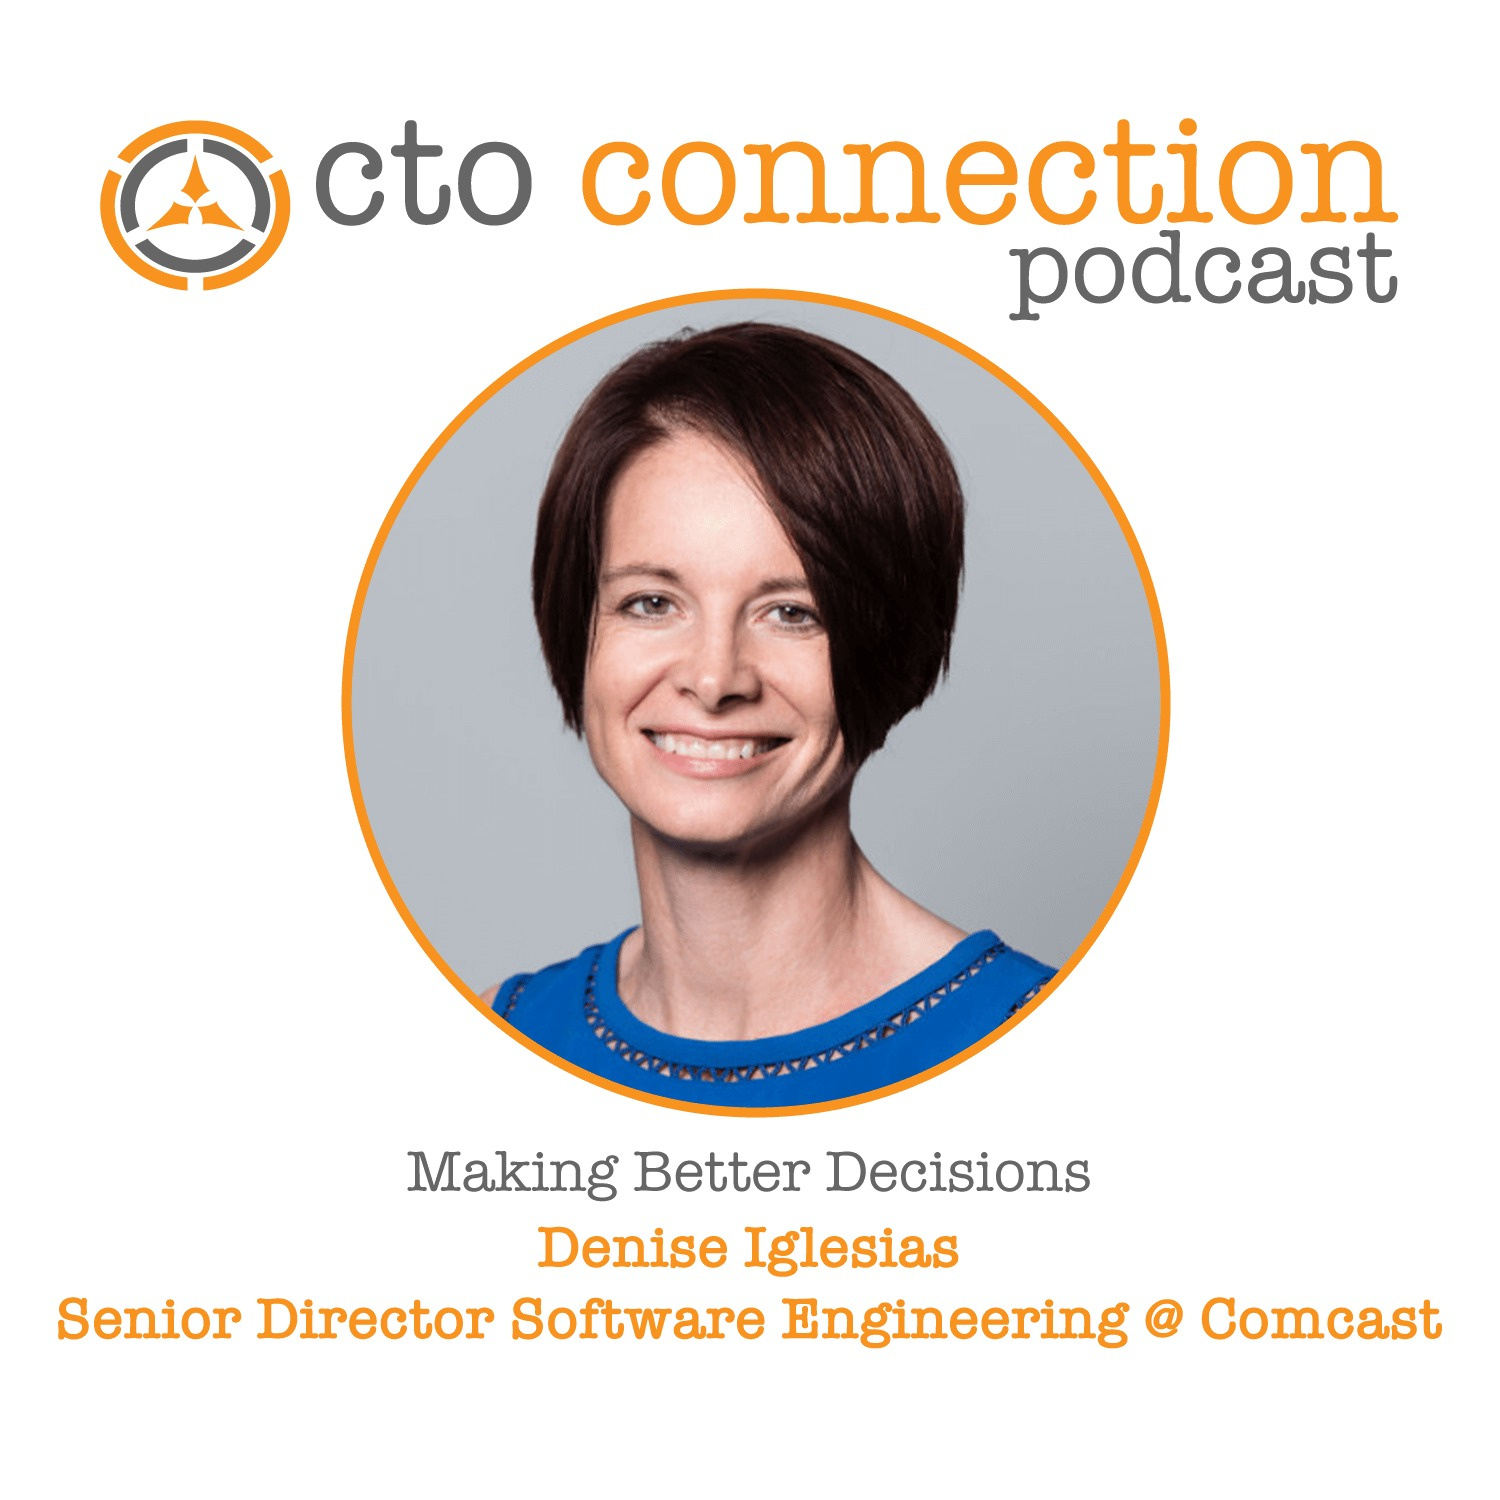 Making Better Decisions with Denise Iglesias